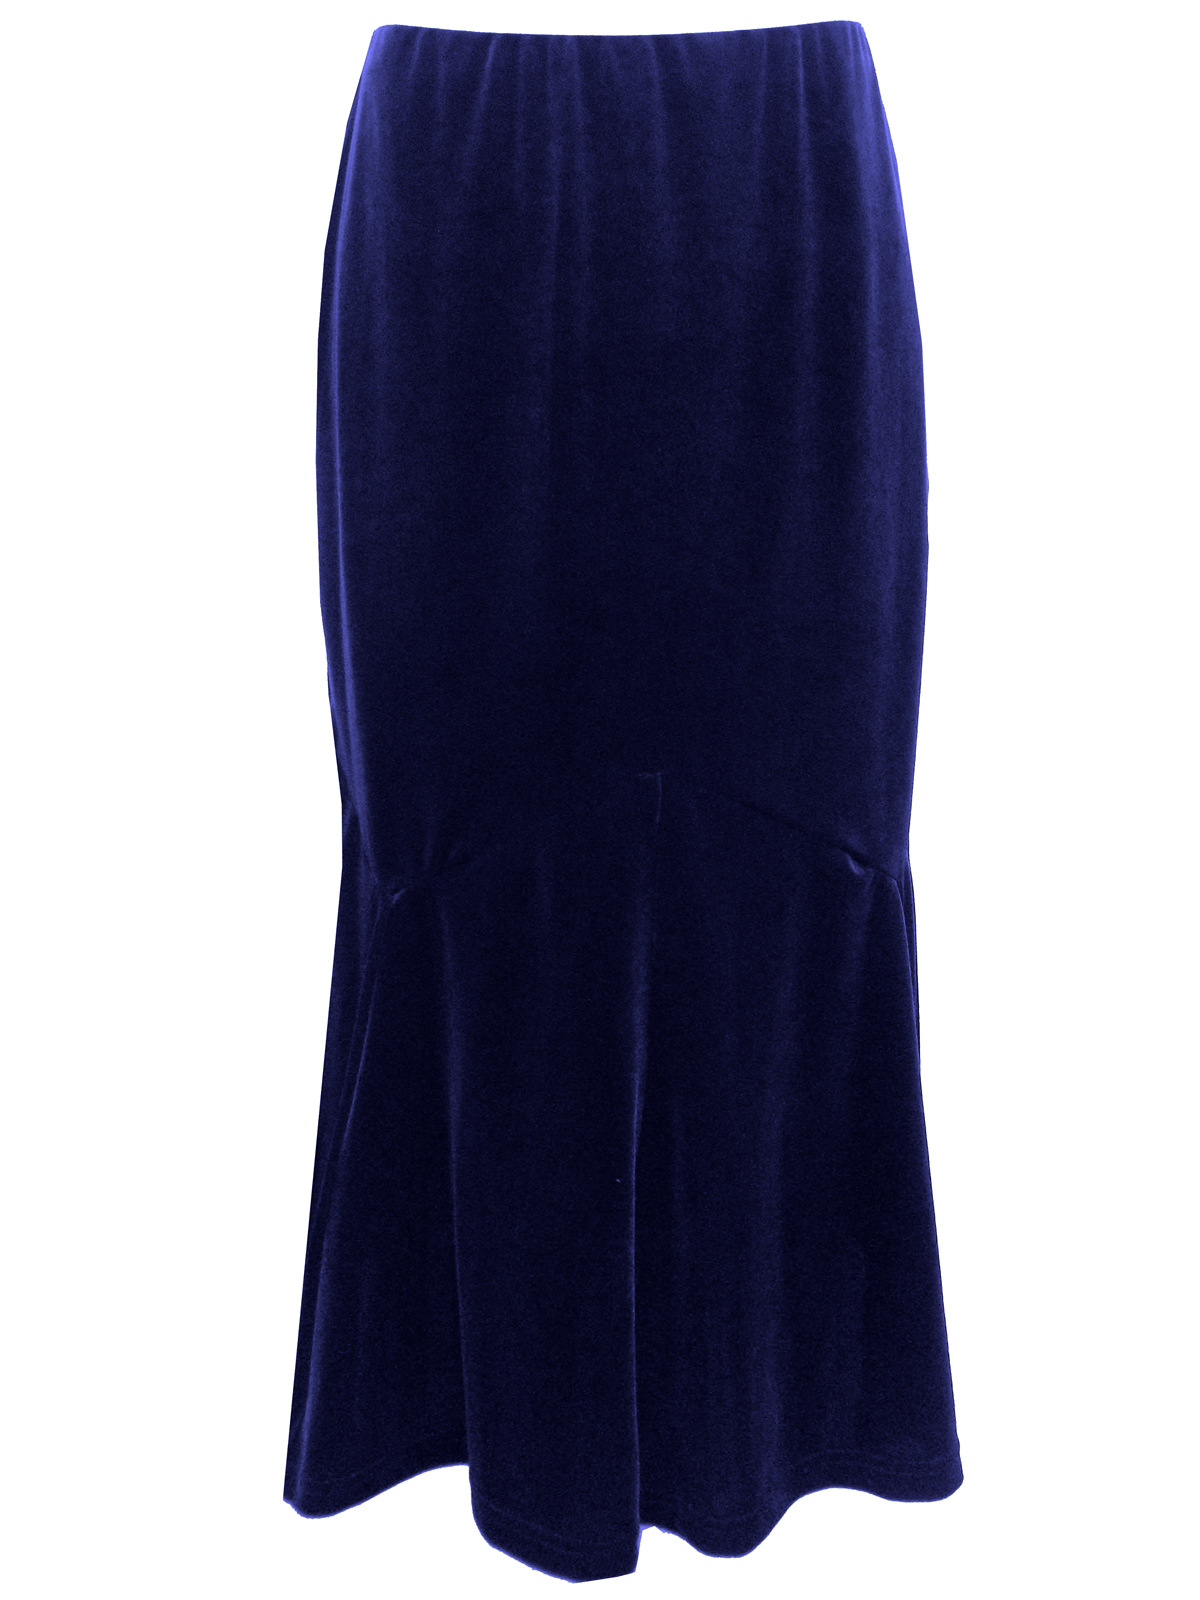 NAVY Velvet Panelled Long Skirt - Plus Size 12 to 22